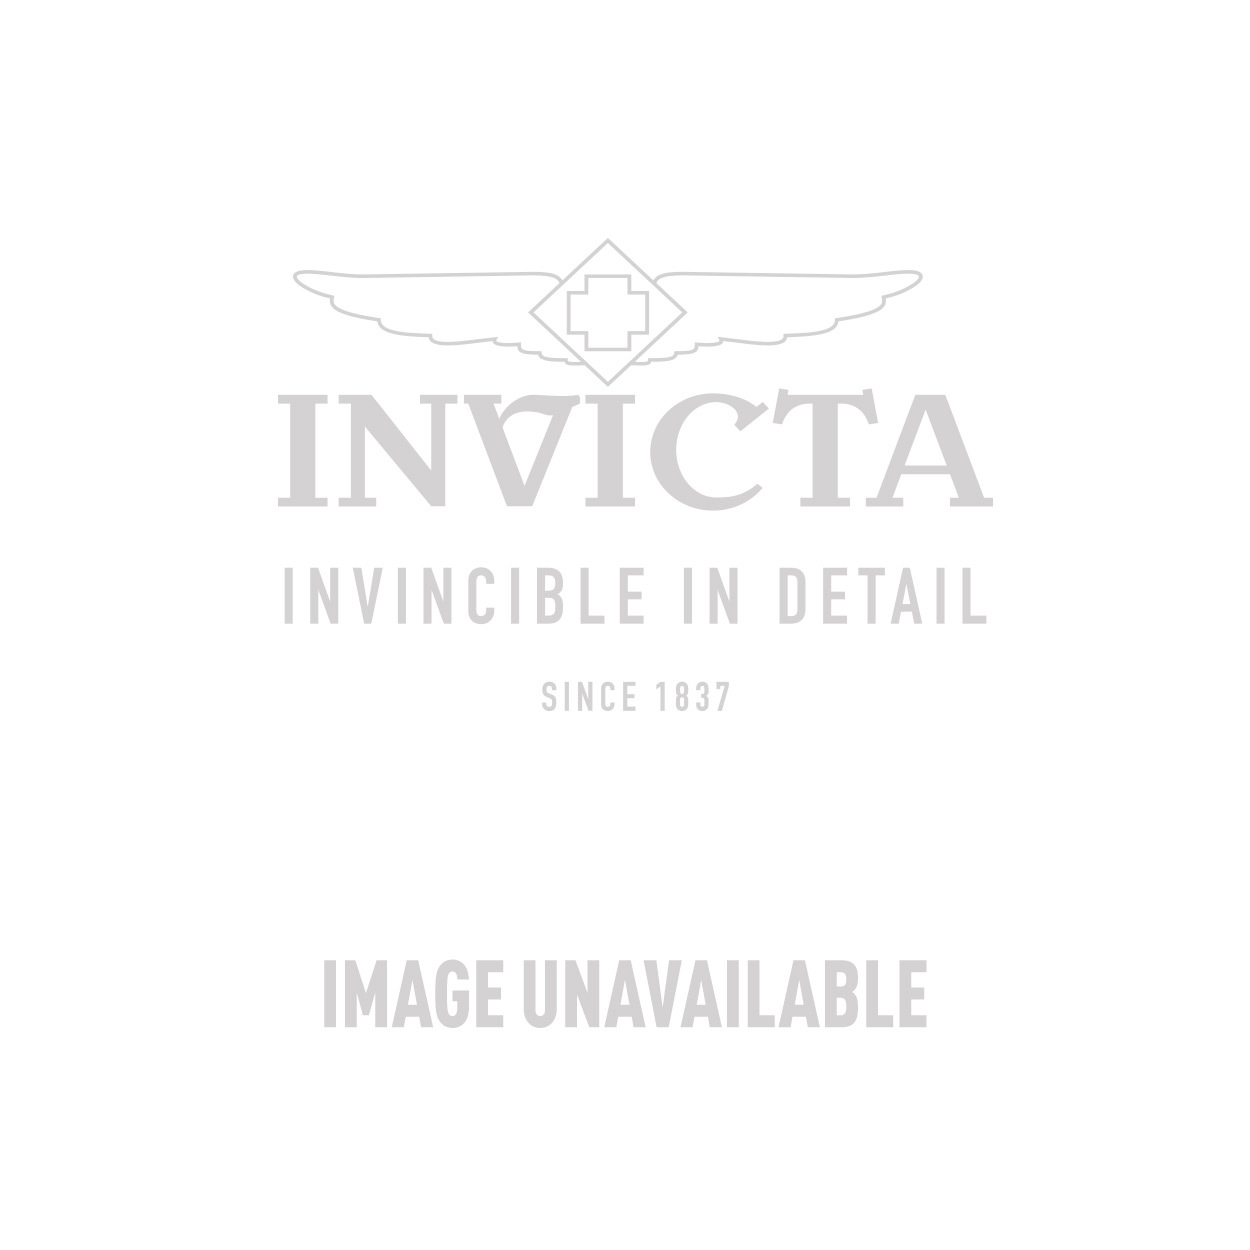 Invicta Speedway Quartz Watch - Stainless Steel case Stainless Steel band - Model 14382